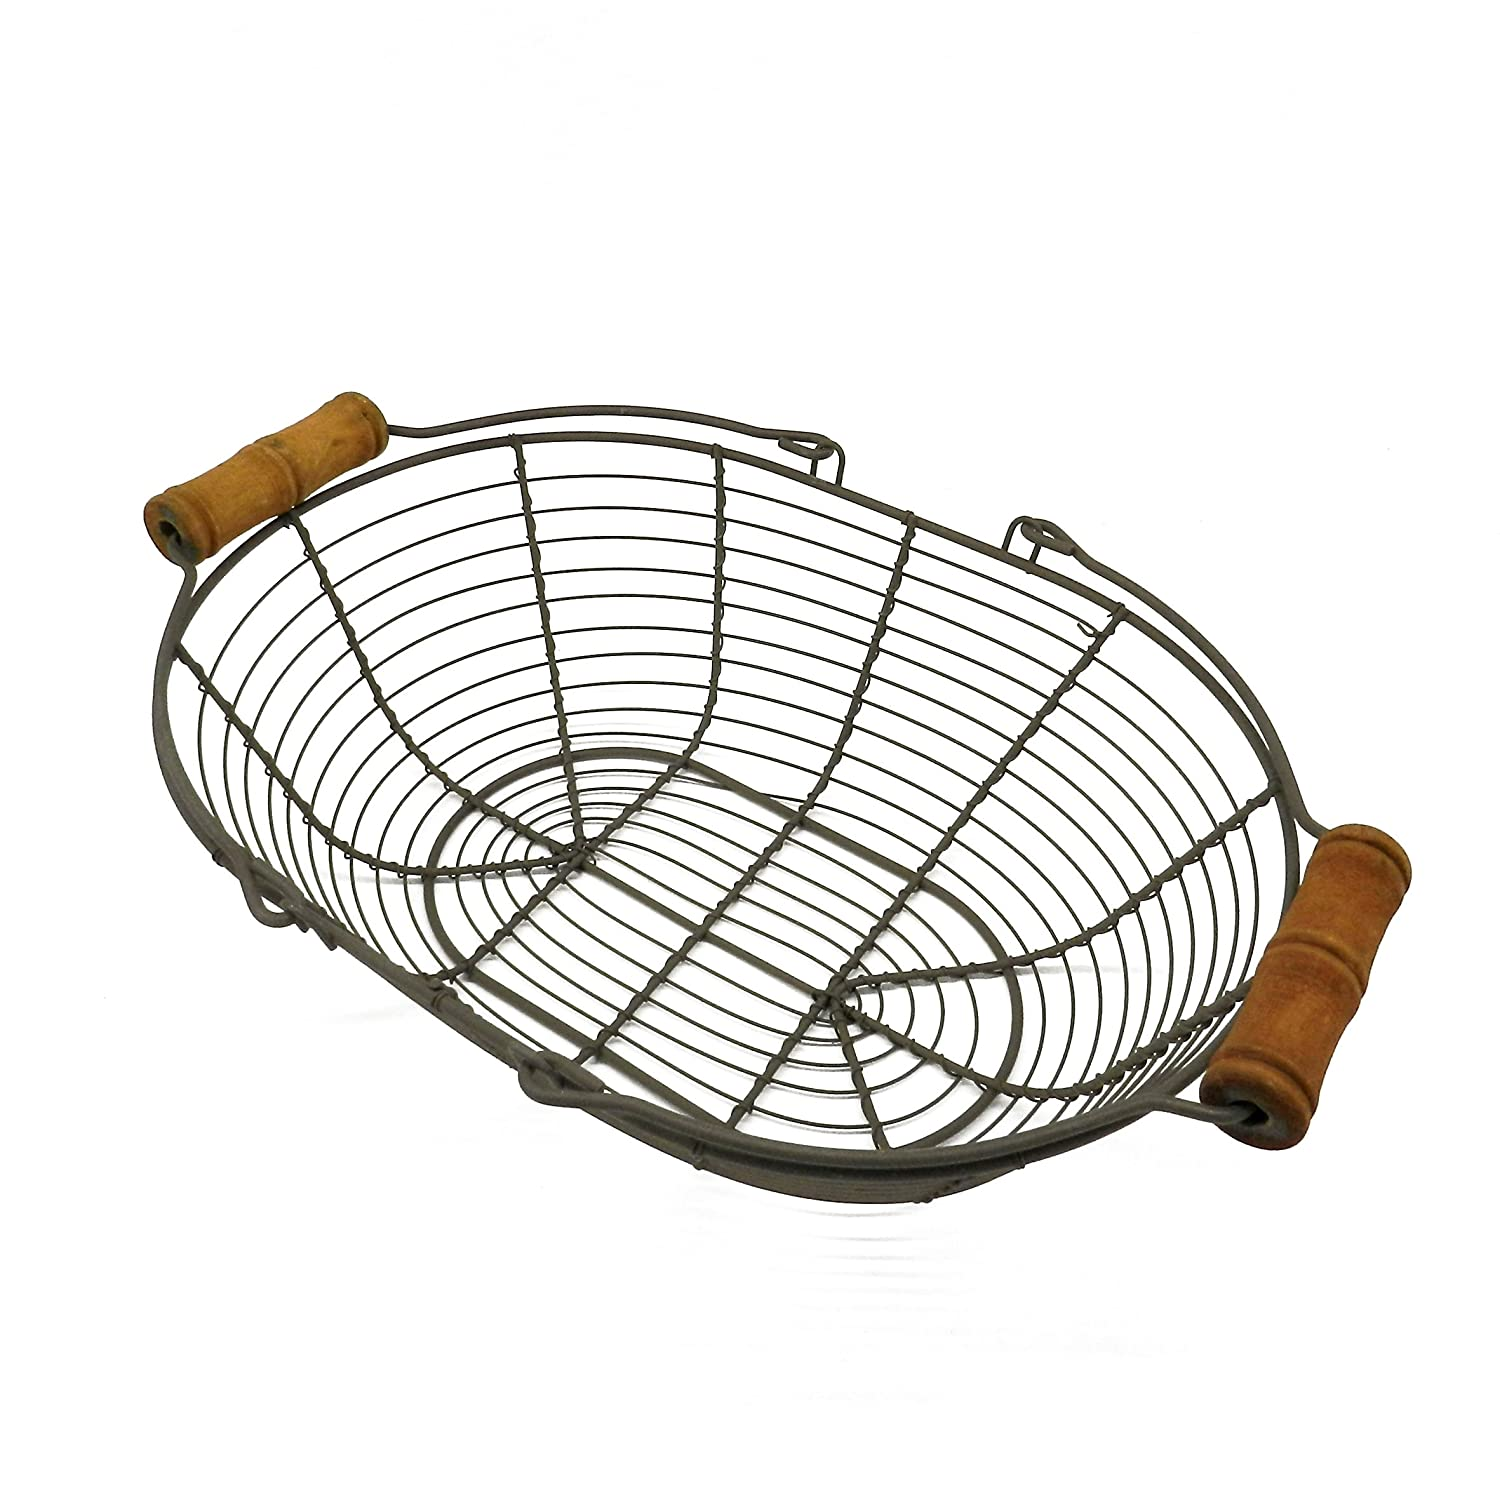 CVHOMEDECO. Oval Metal Wire Egg Basket Wire Basket with Wooden Handle Country Vintage Style Storage Basket. Rusty, 12-3/4